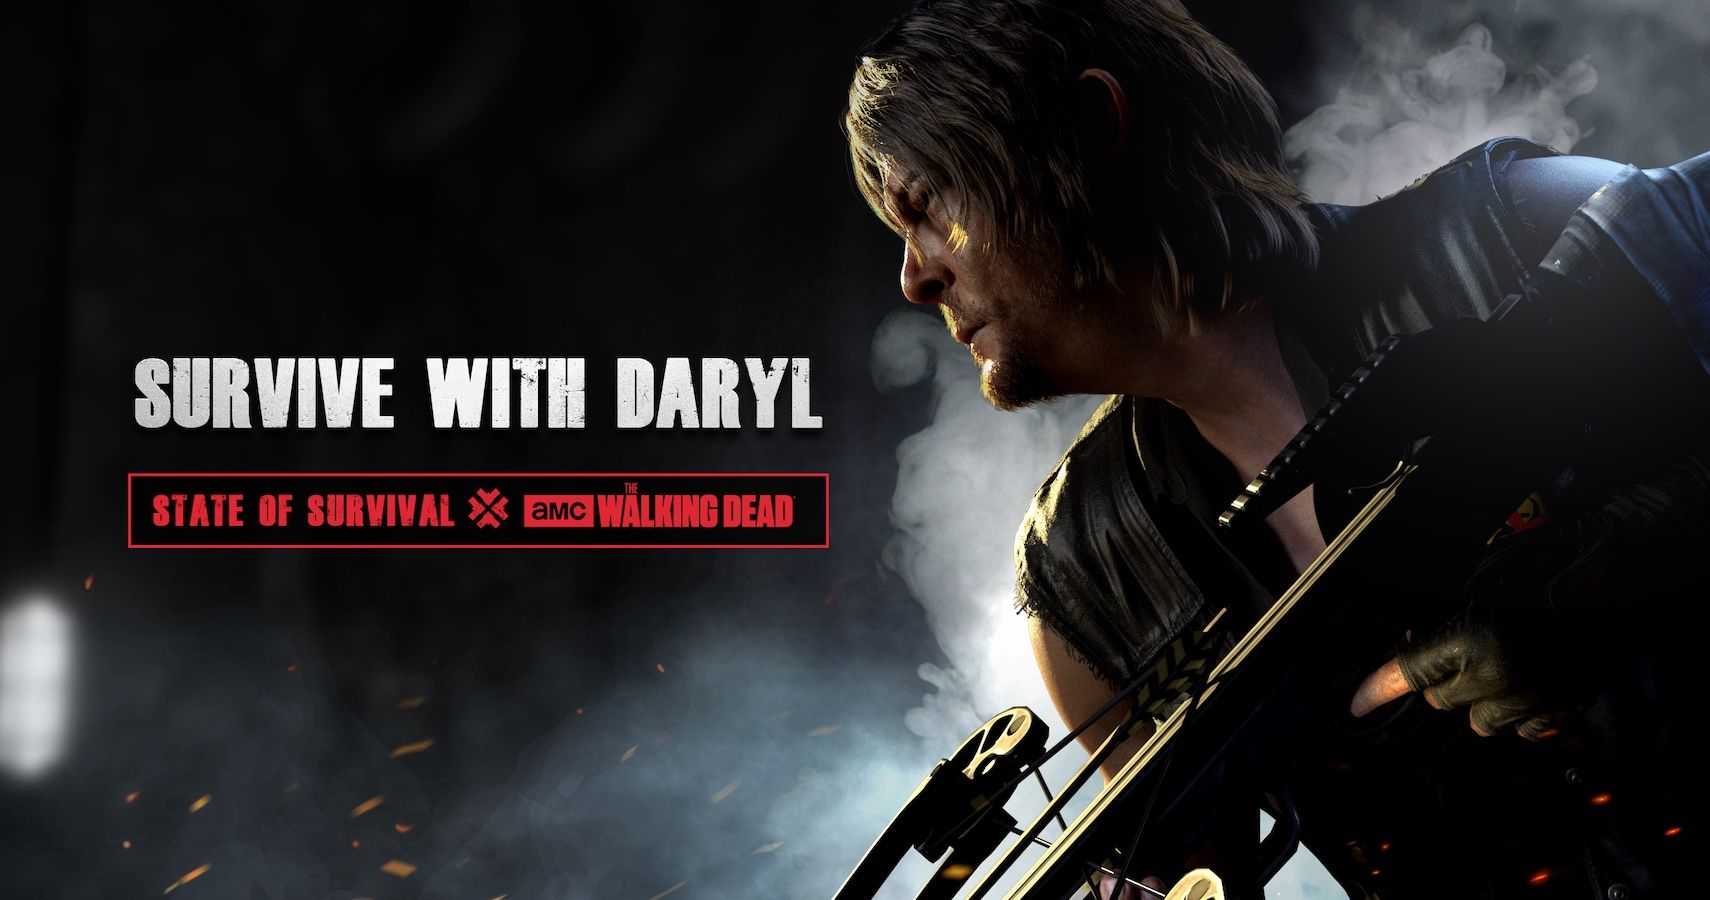 Walking Dead's Daryl Dixon Joins Mobile Game State of Survival